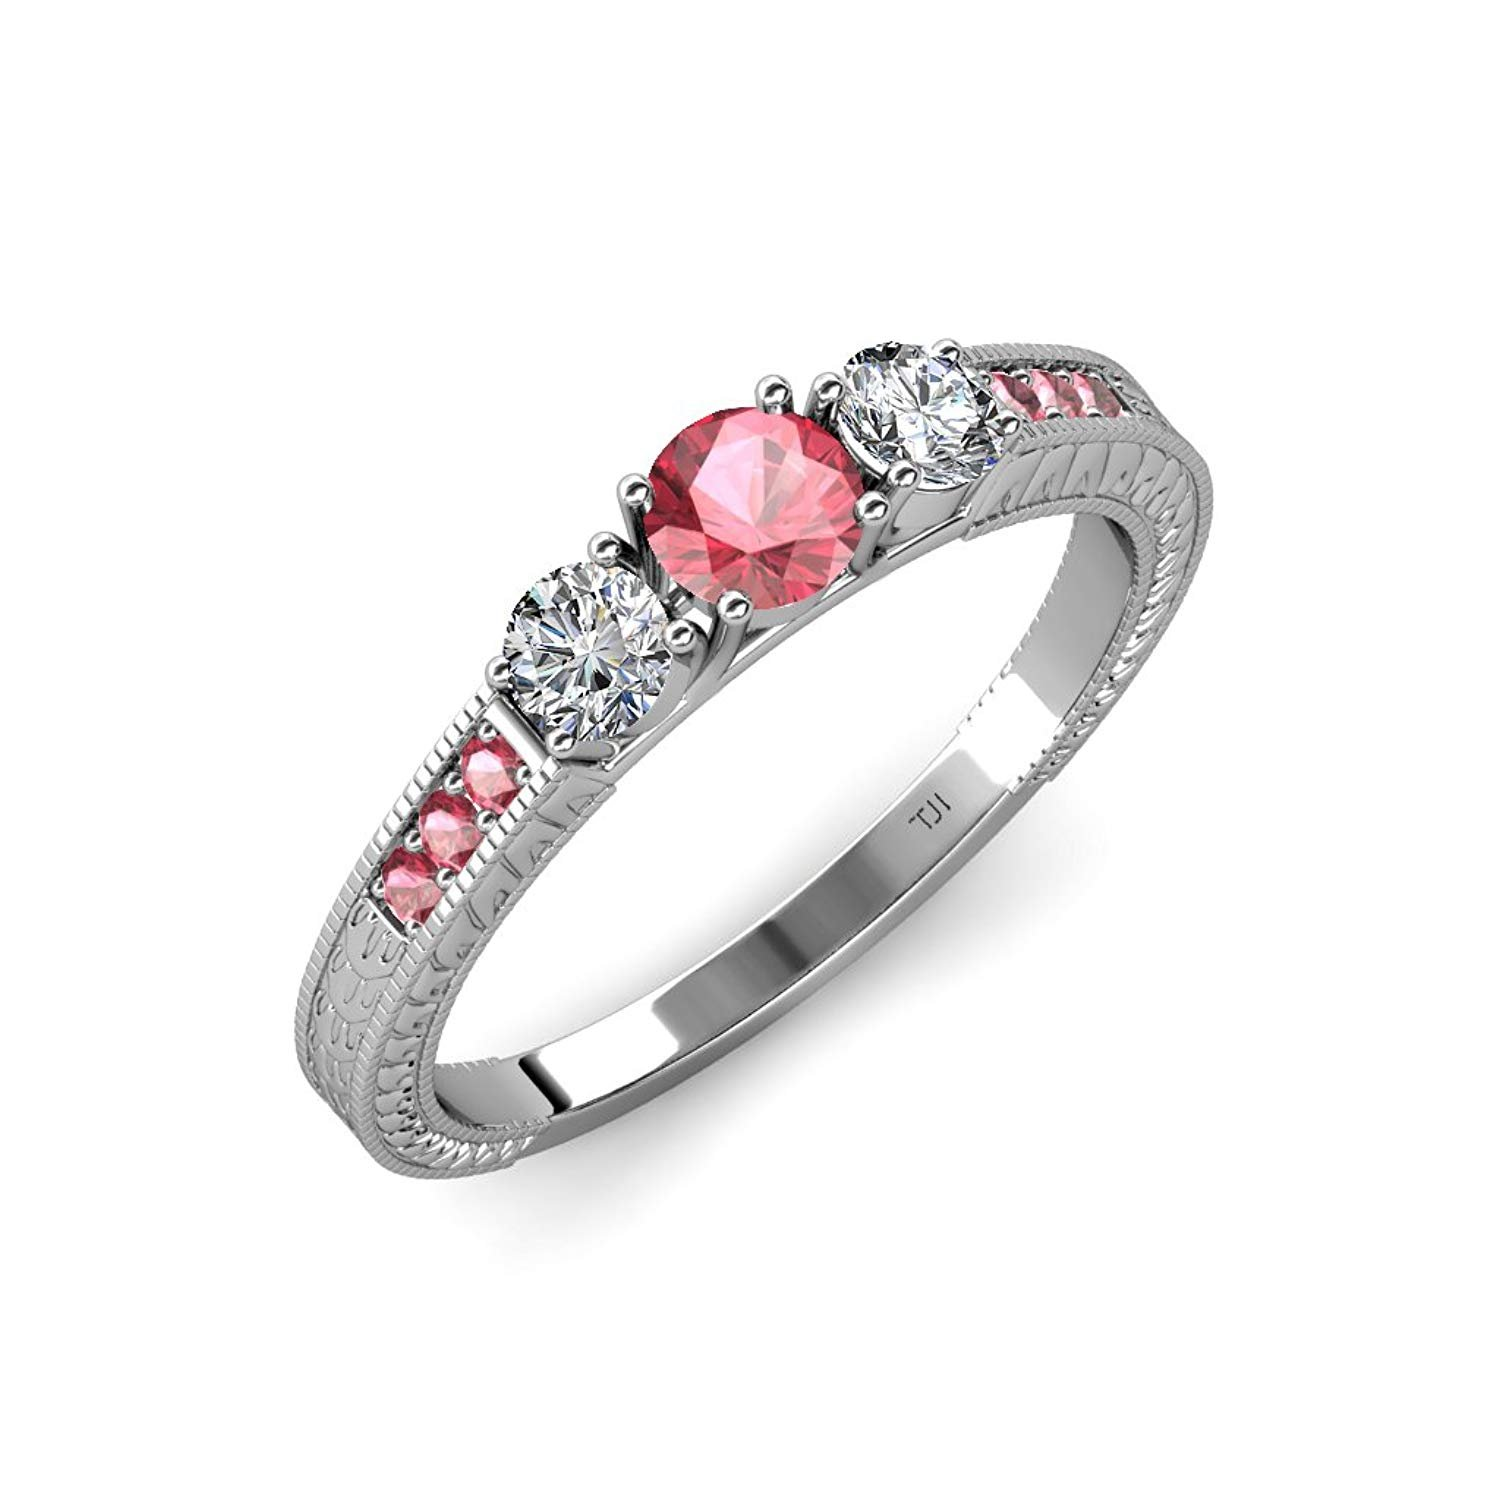 Pink Tourmaline and Diamond 3 Stone Ring with Side Pink Tourmaline 0.85 ct tw 14K White Gold.size 6.0 by TriJewels